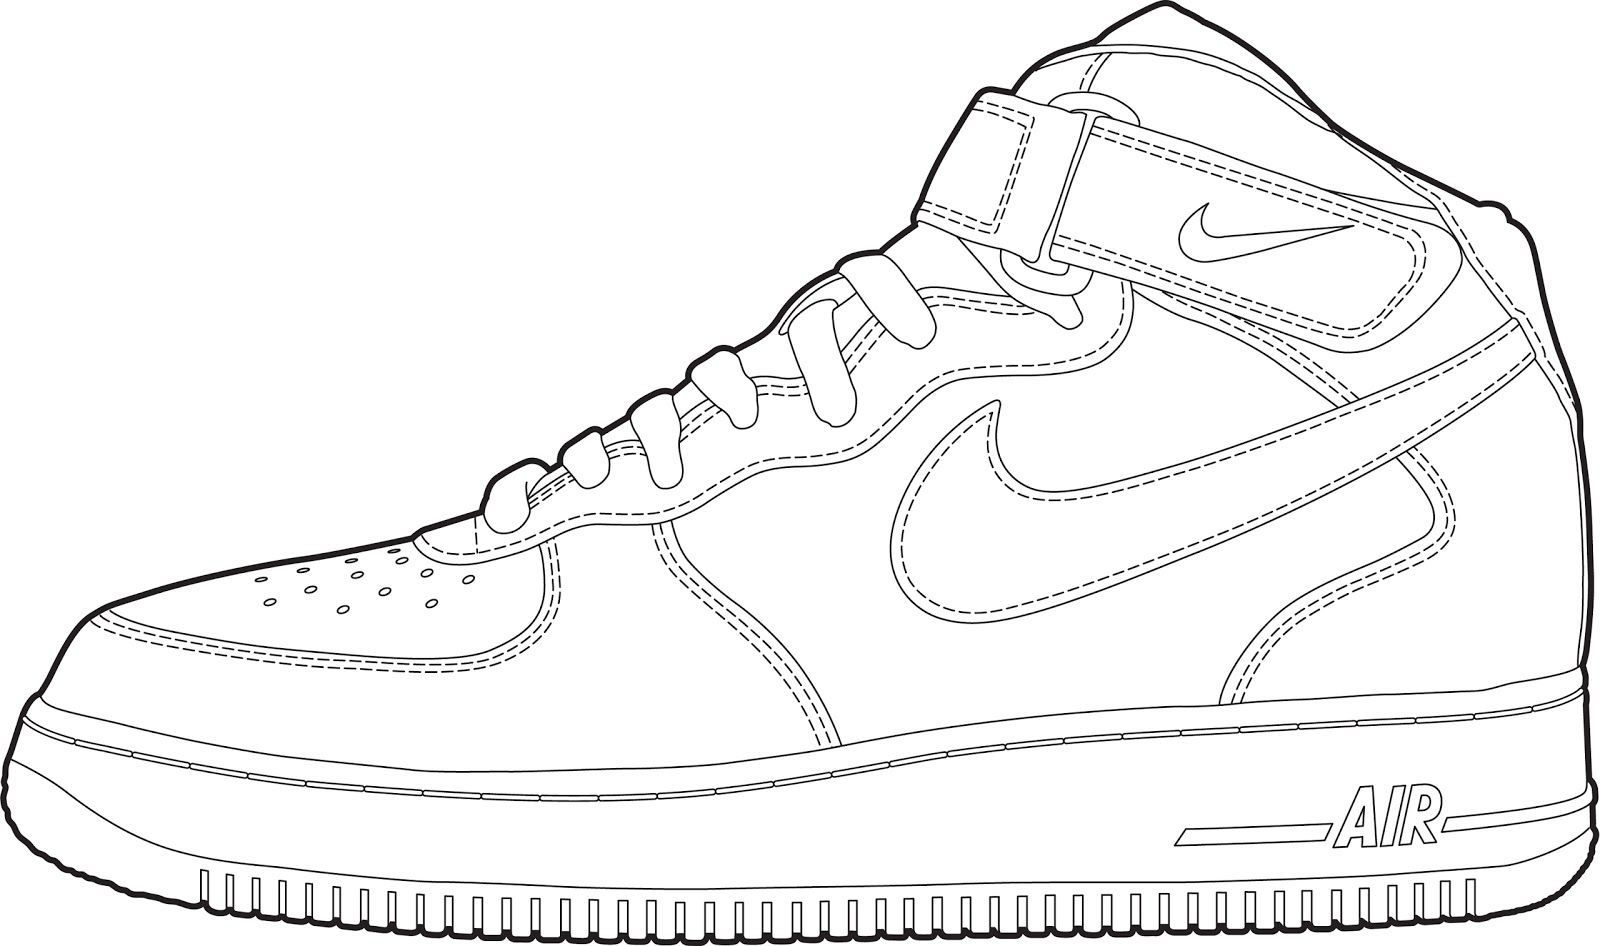 Survival Jordan 11 Coloring Page Sneakers Drawing Sneakers Sketch Pictures Of Shoes